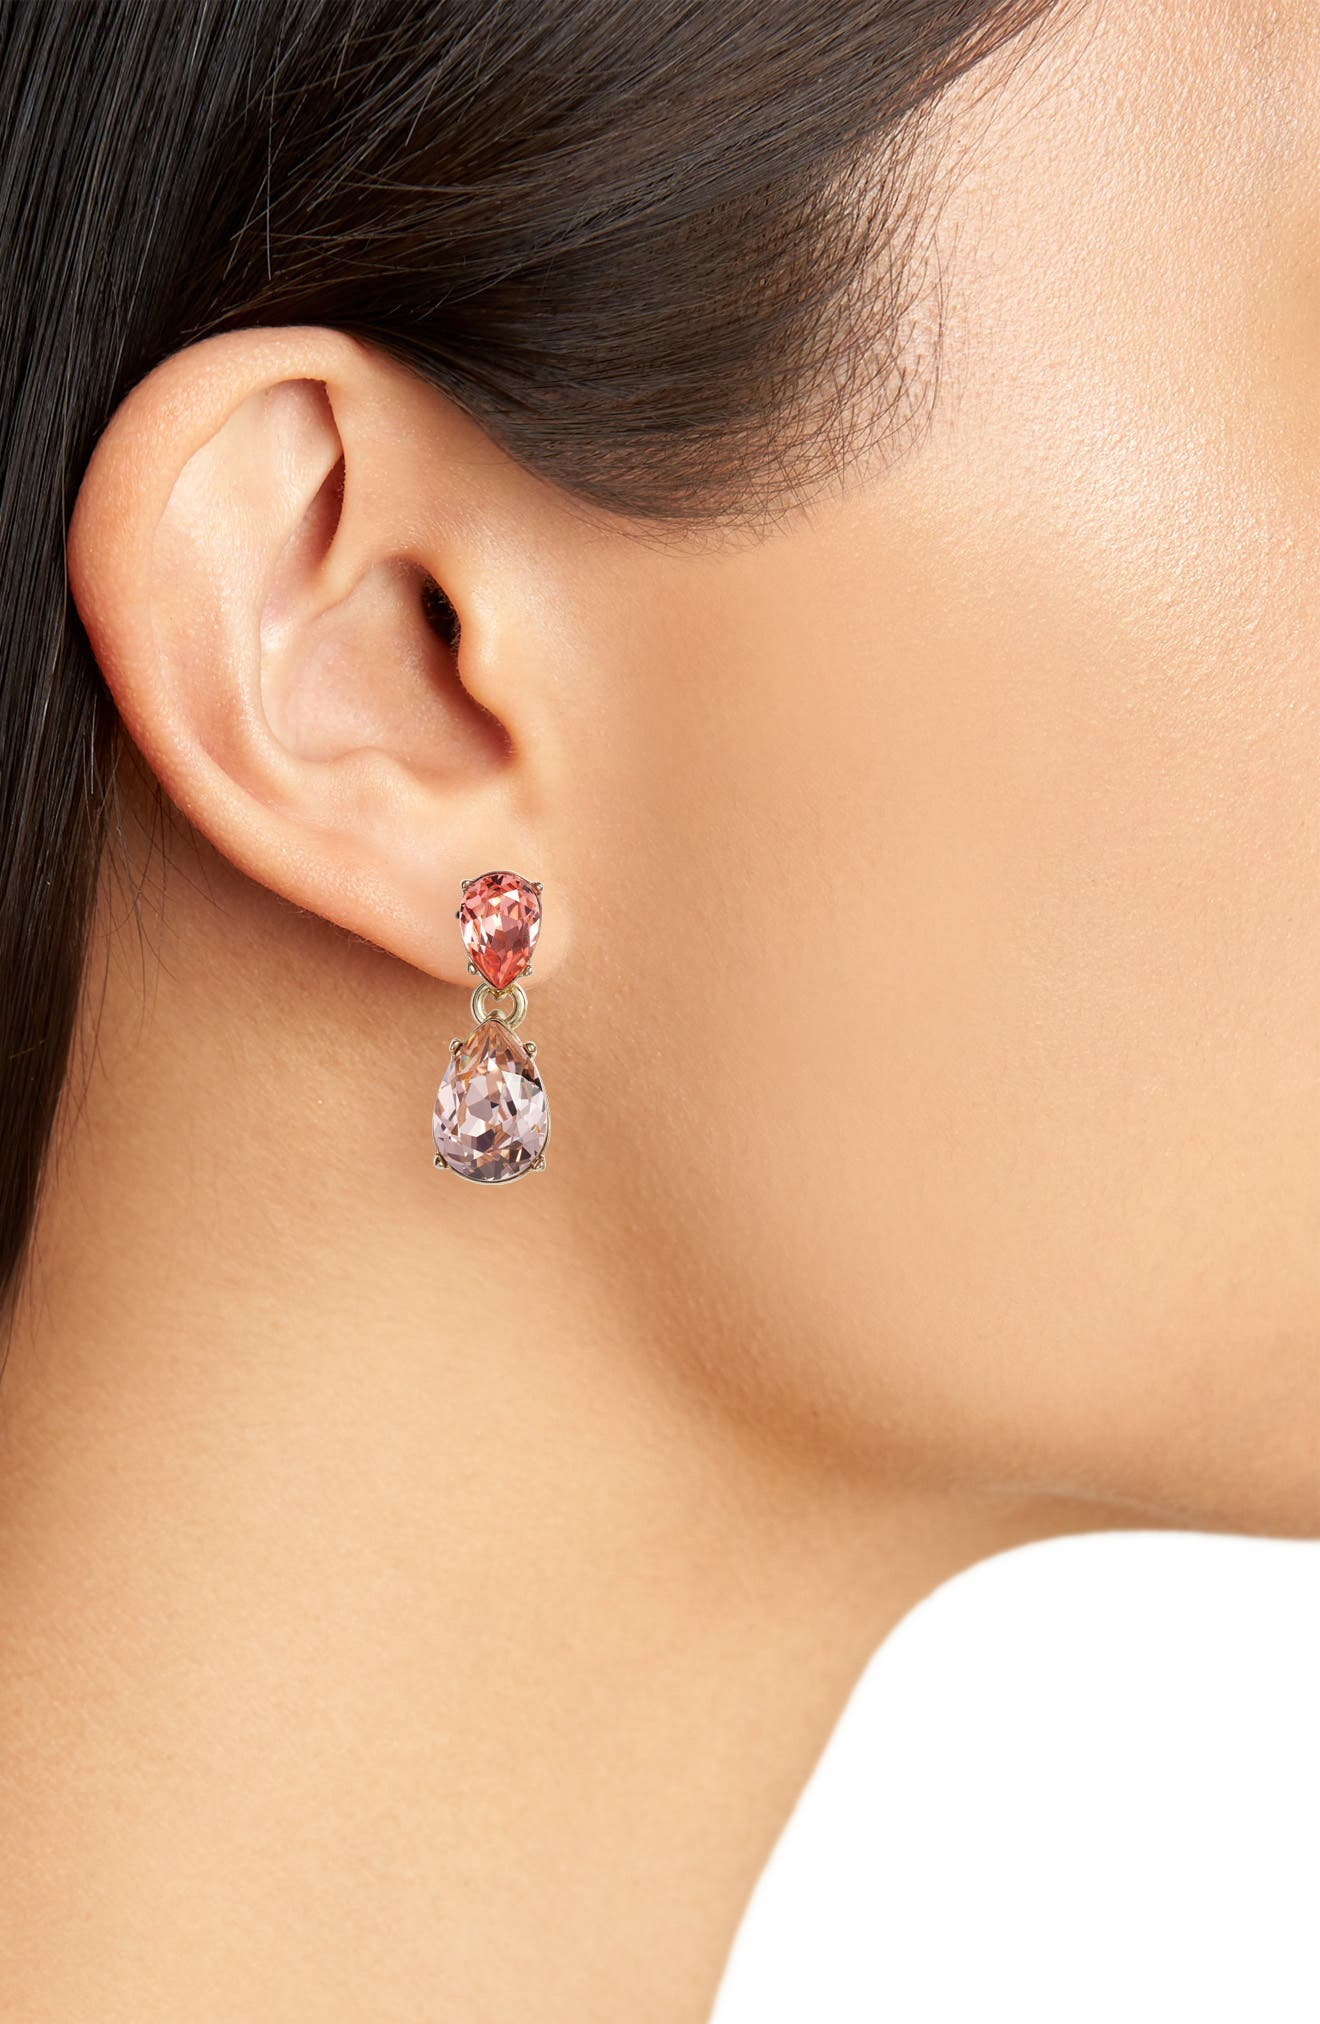 Double Pear Crystal Earrings,                             Alternate thumbnail 2, color,                             710